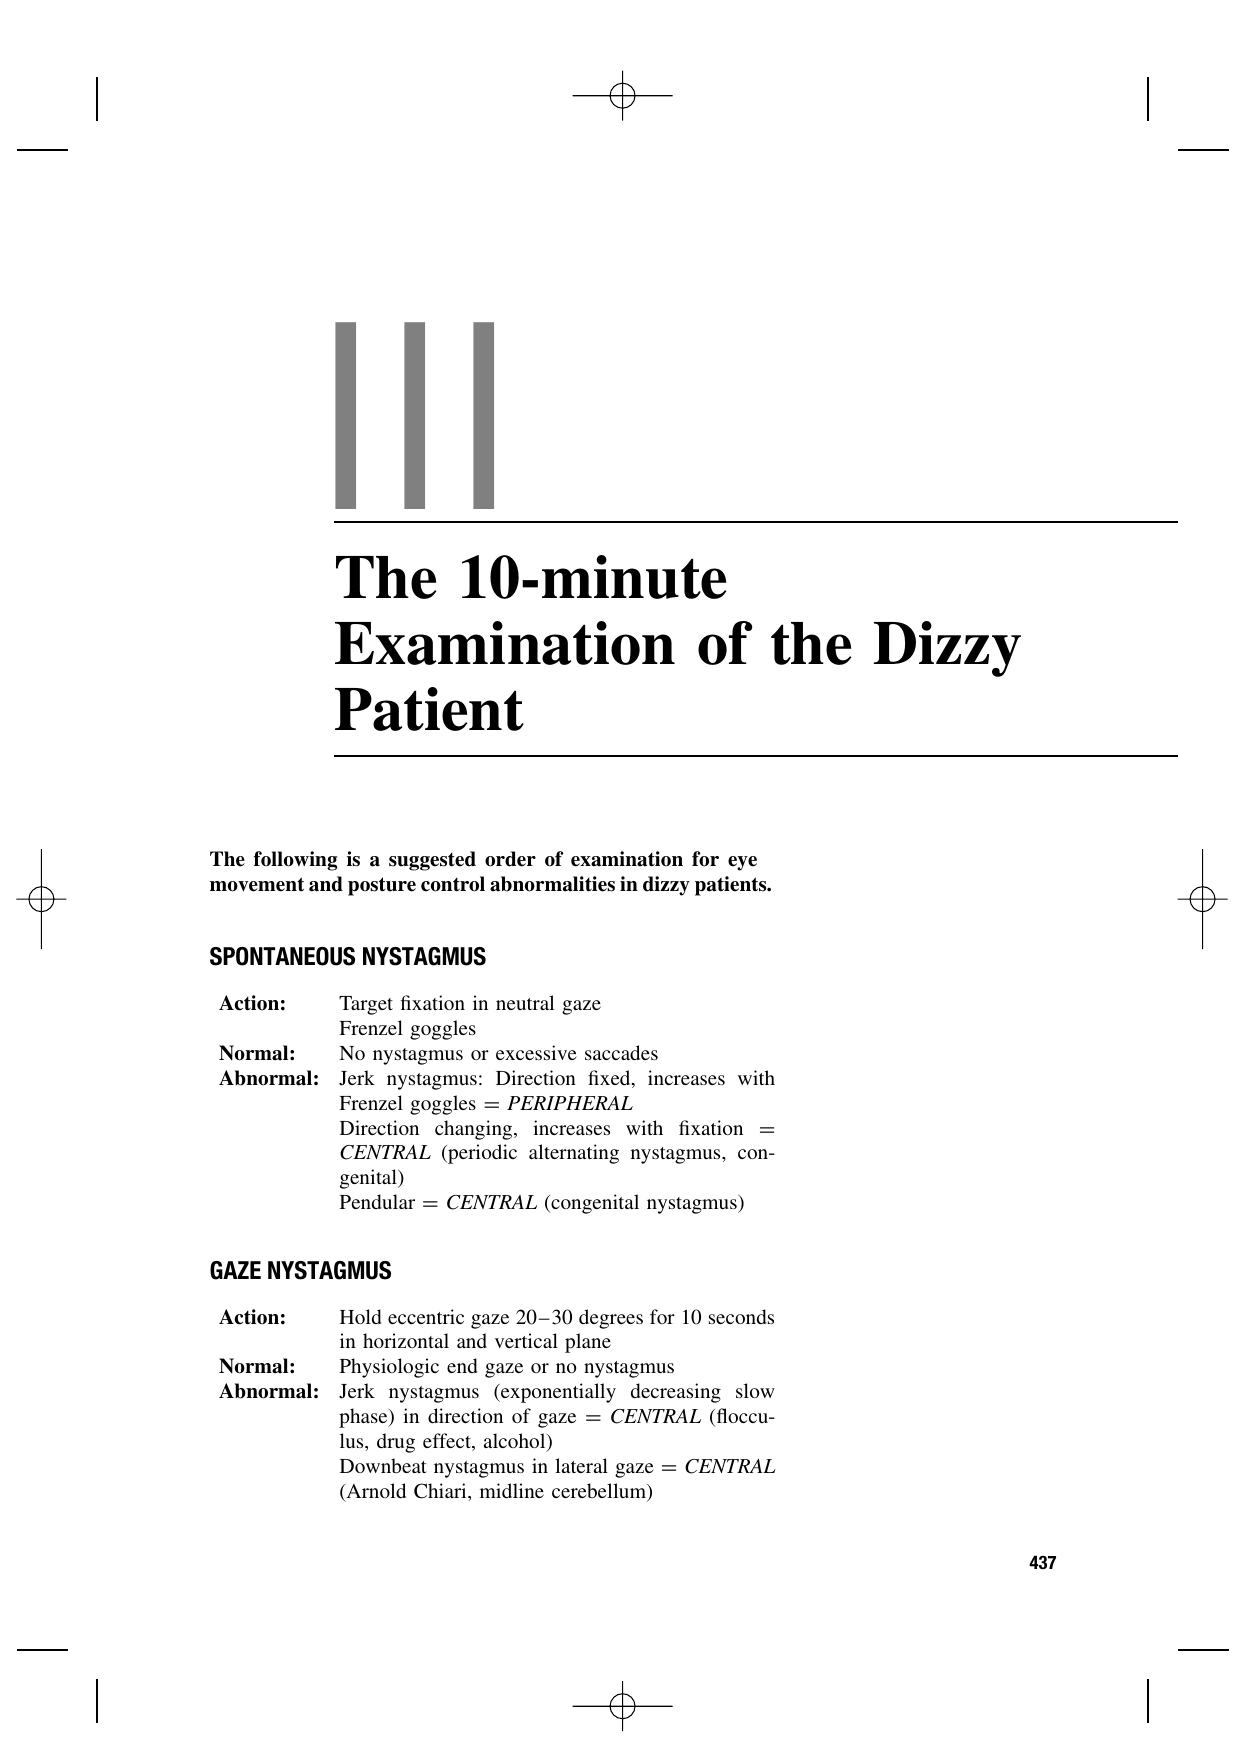 The 10-minute Examination of the Dizzy Patient